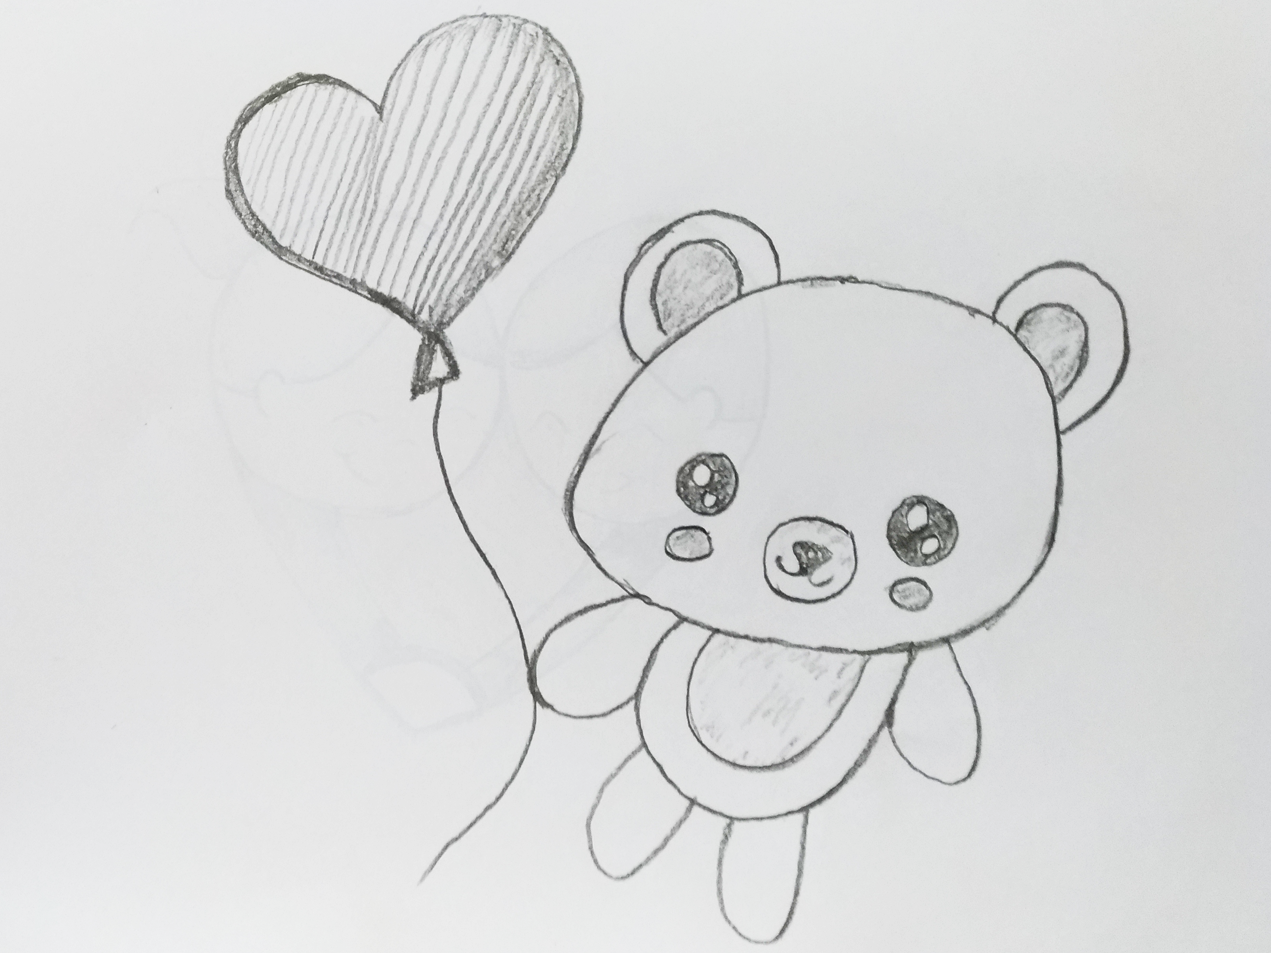 Love heart bear art sketch art book black pencil animal cute cartoon kids design pencil art